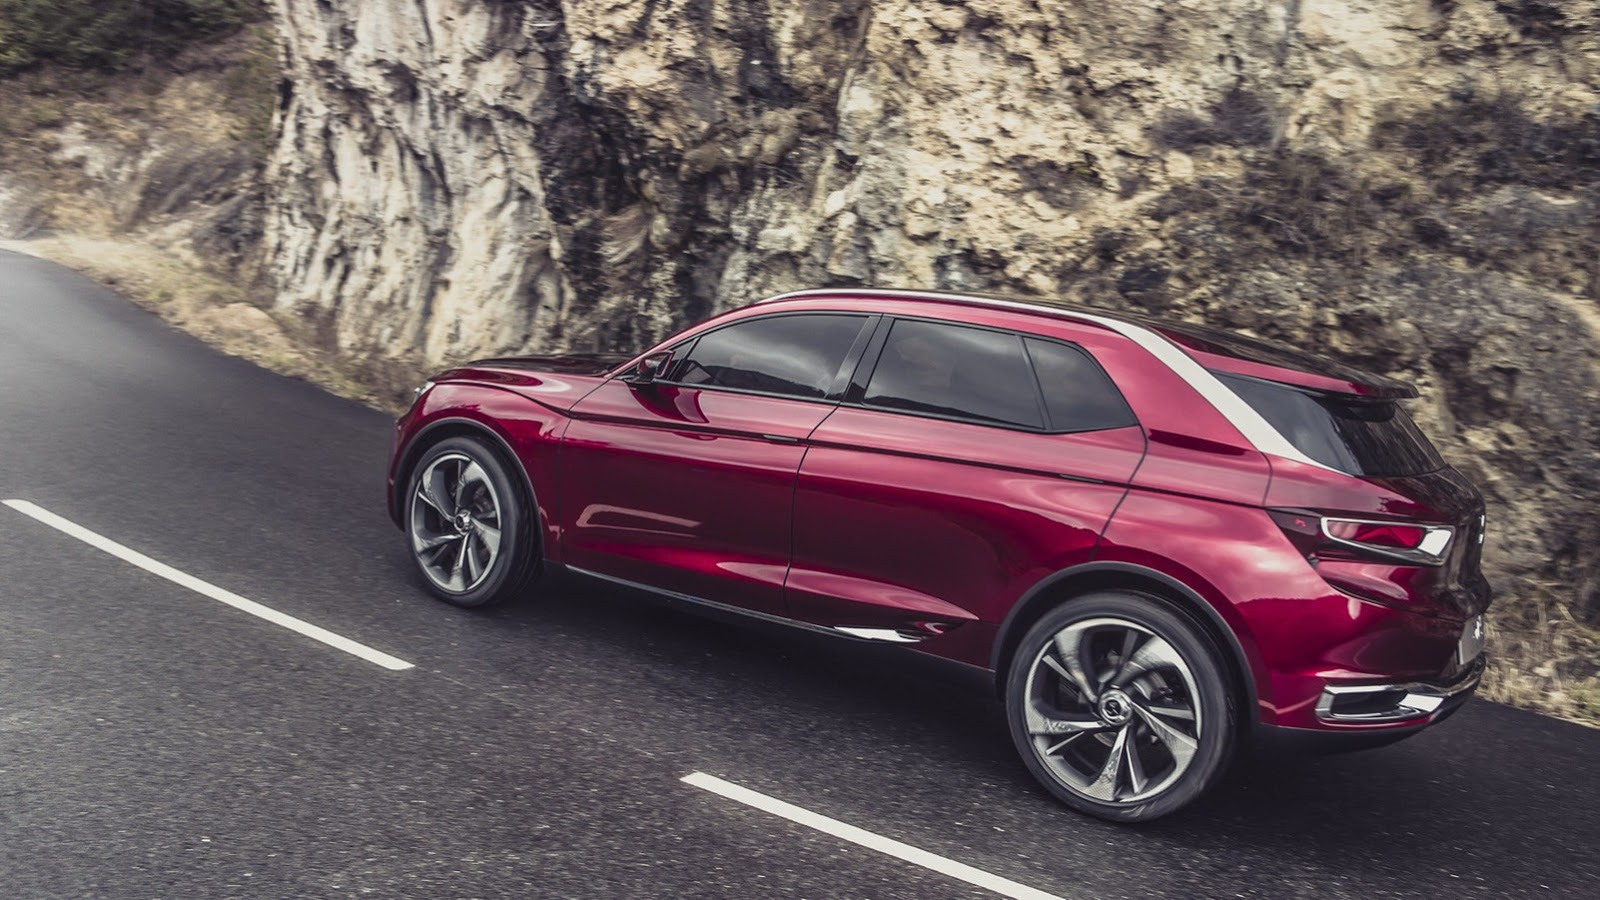 New Citroen DS Concept Car Unveiled At Shanghai Motor Show Photo Gallery Wallpaper For Ios